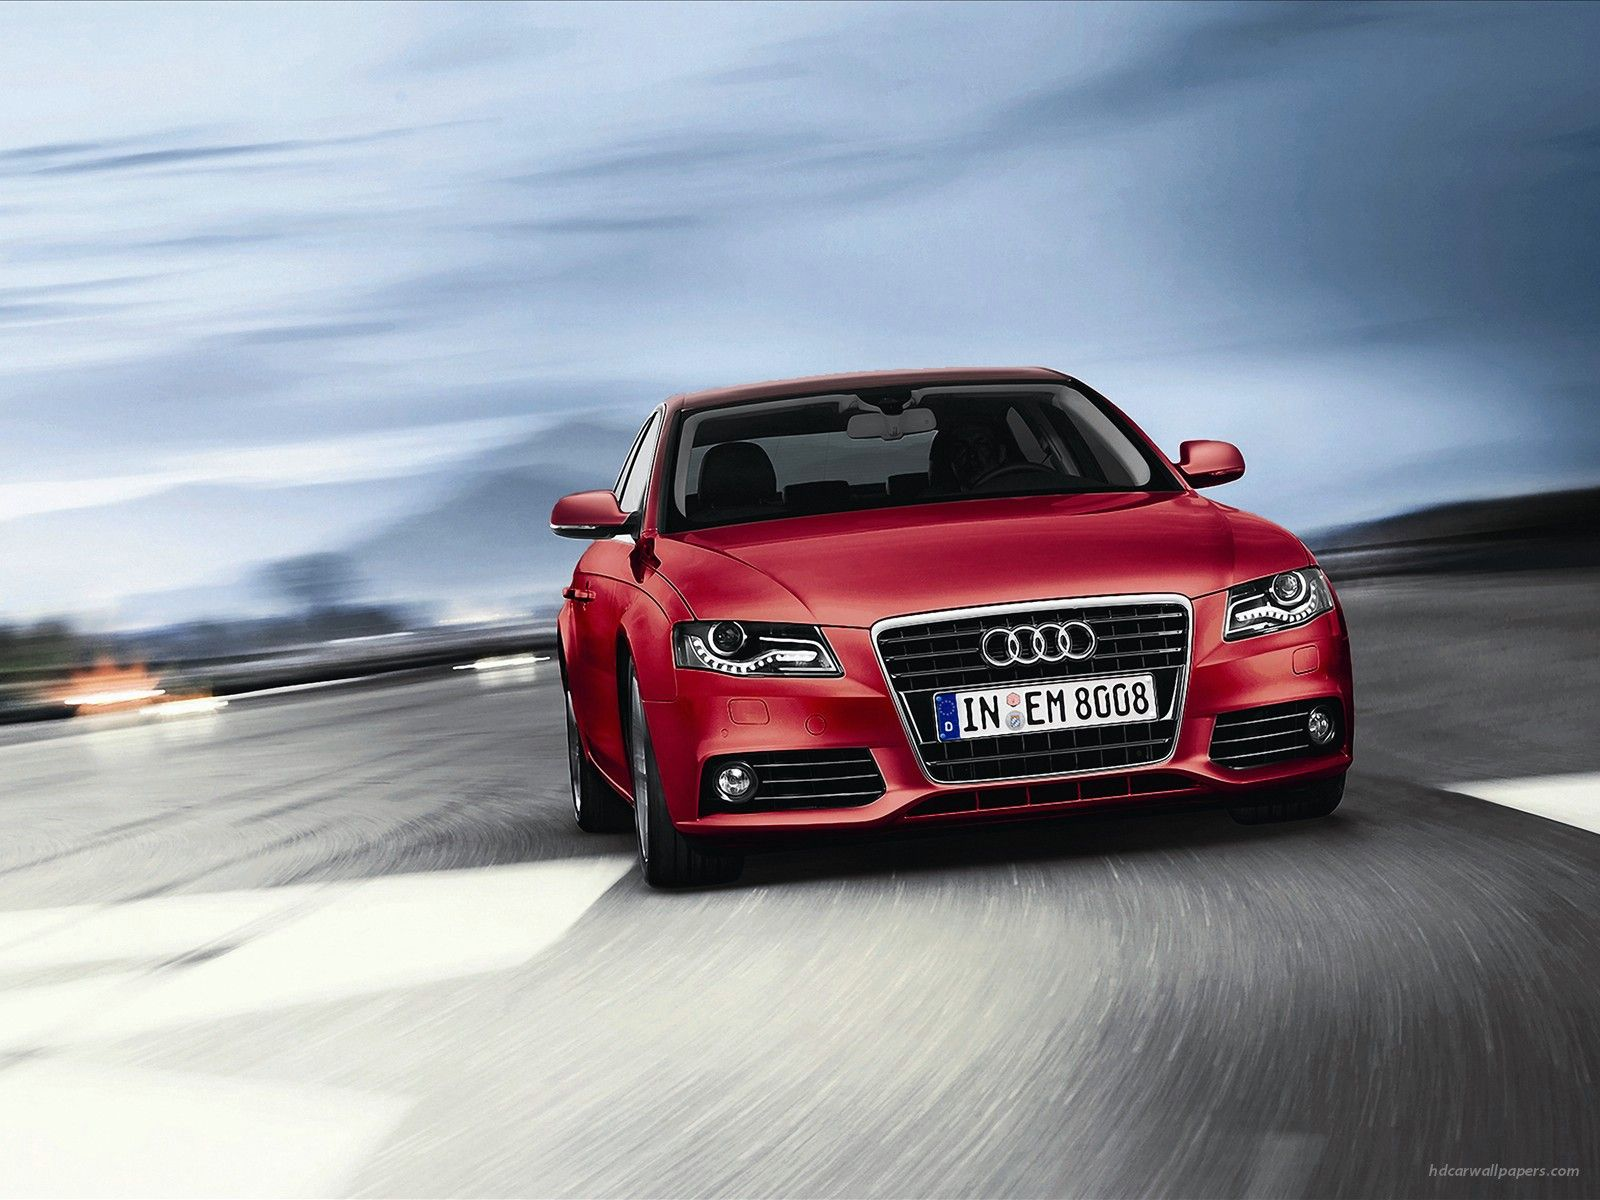 Audi A HD Wallpapers Get Free Top Quality Audi A HD Wallpapers - Tom williams audi